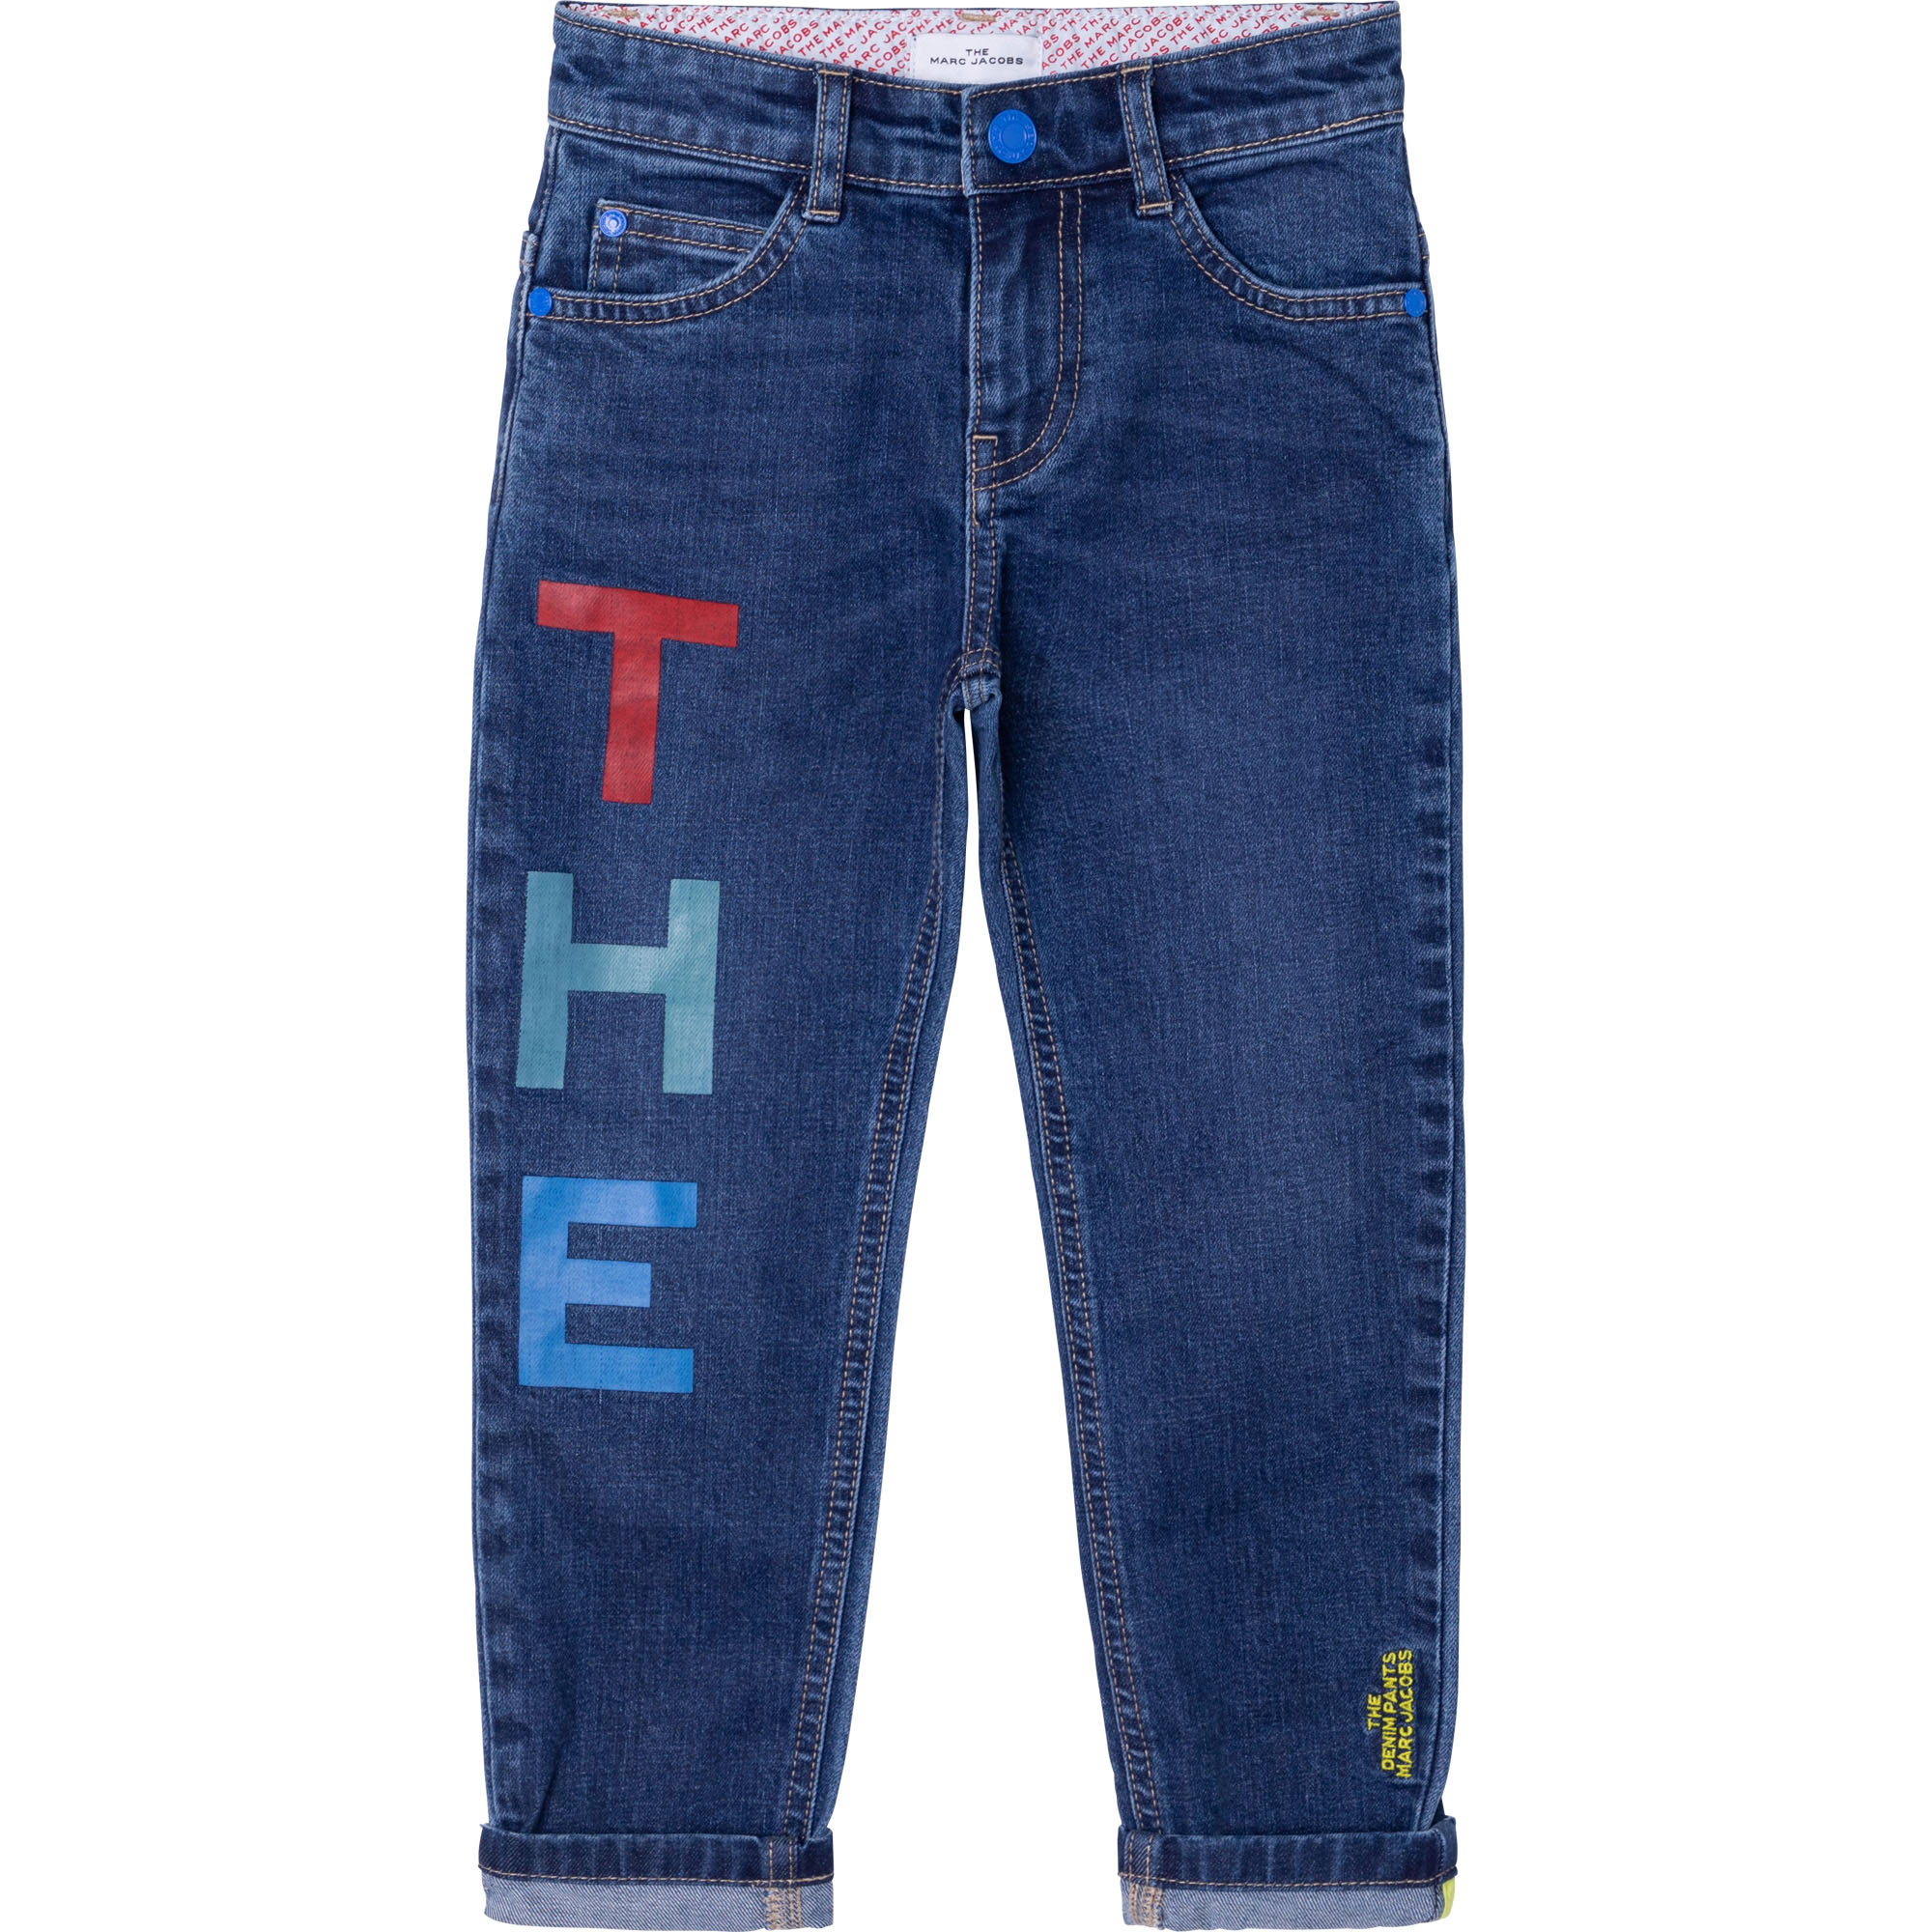 DENIM TROUSERS THE MARC JACOBS for BOY